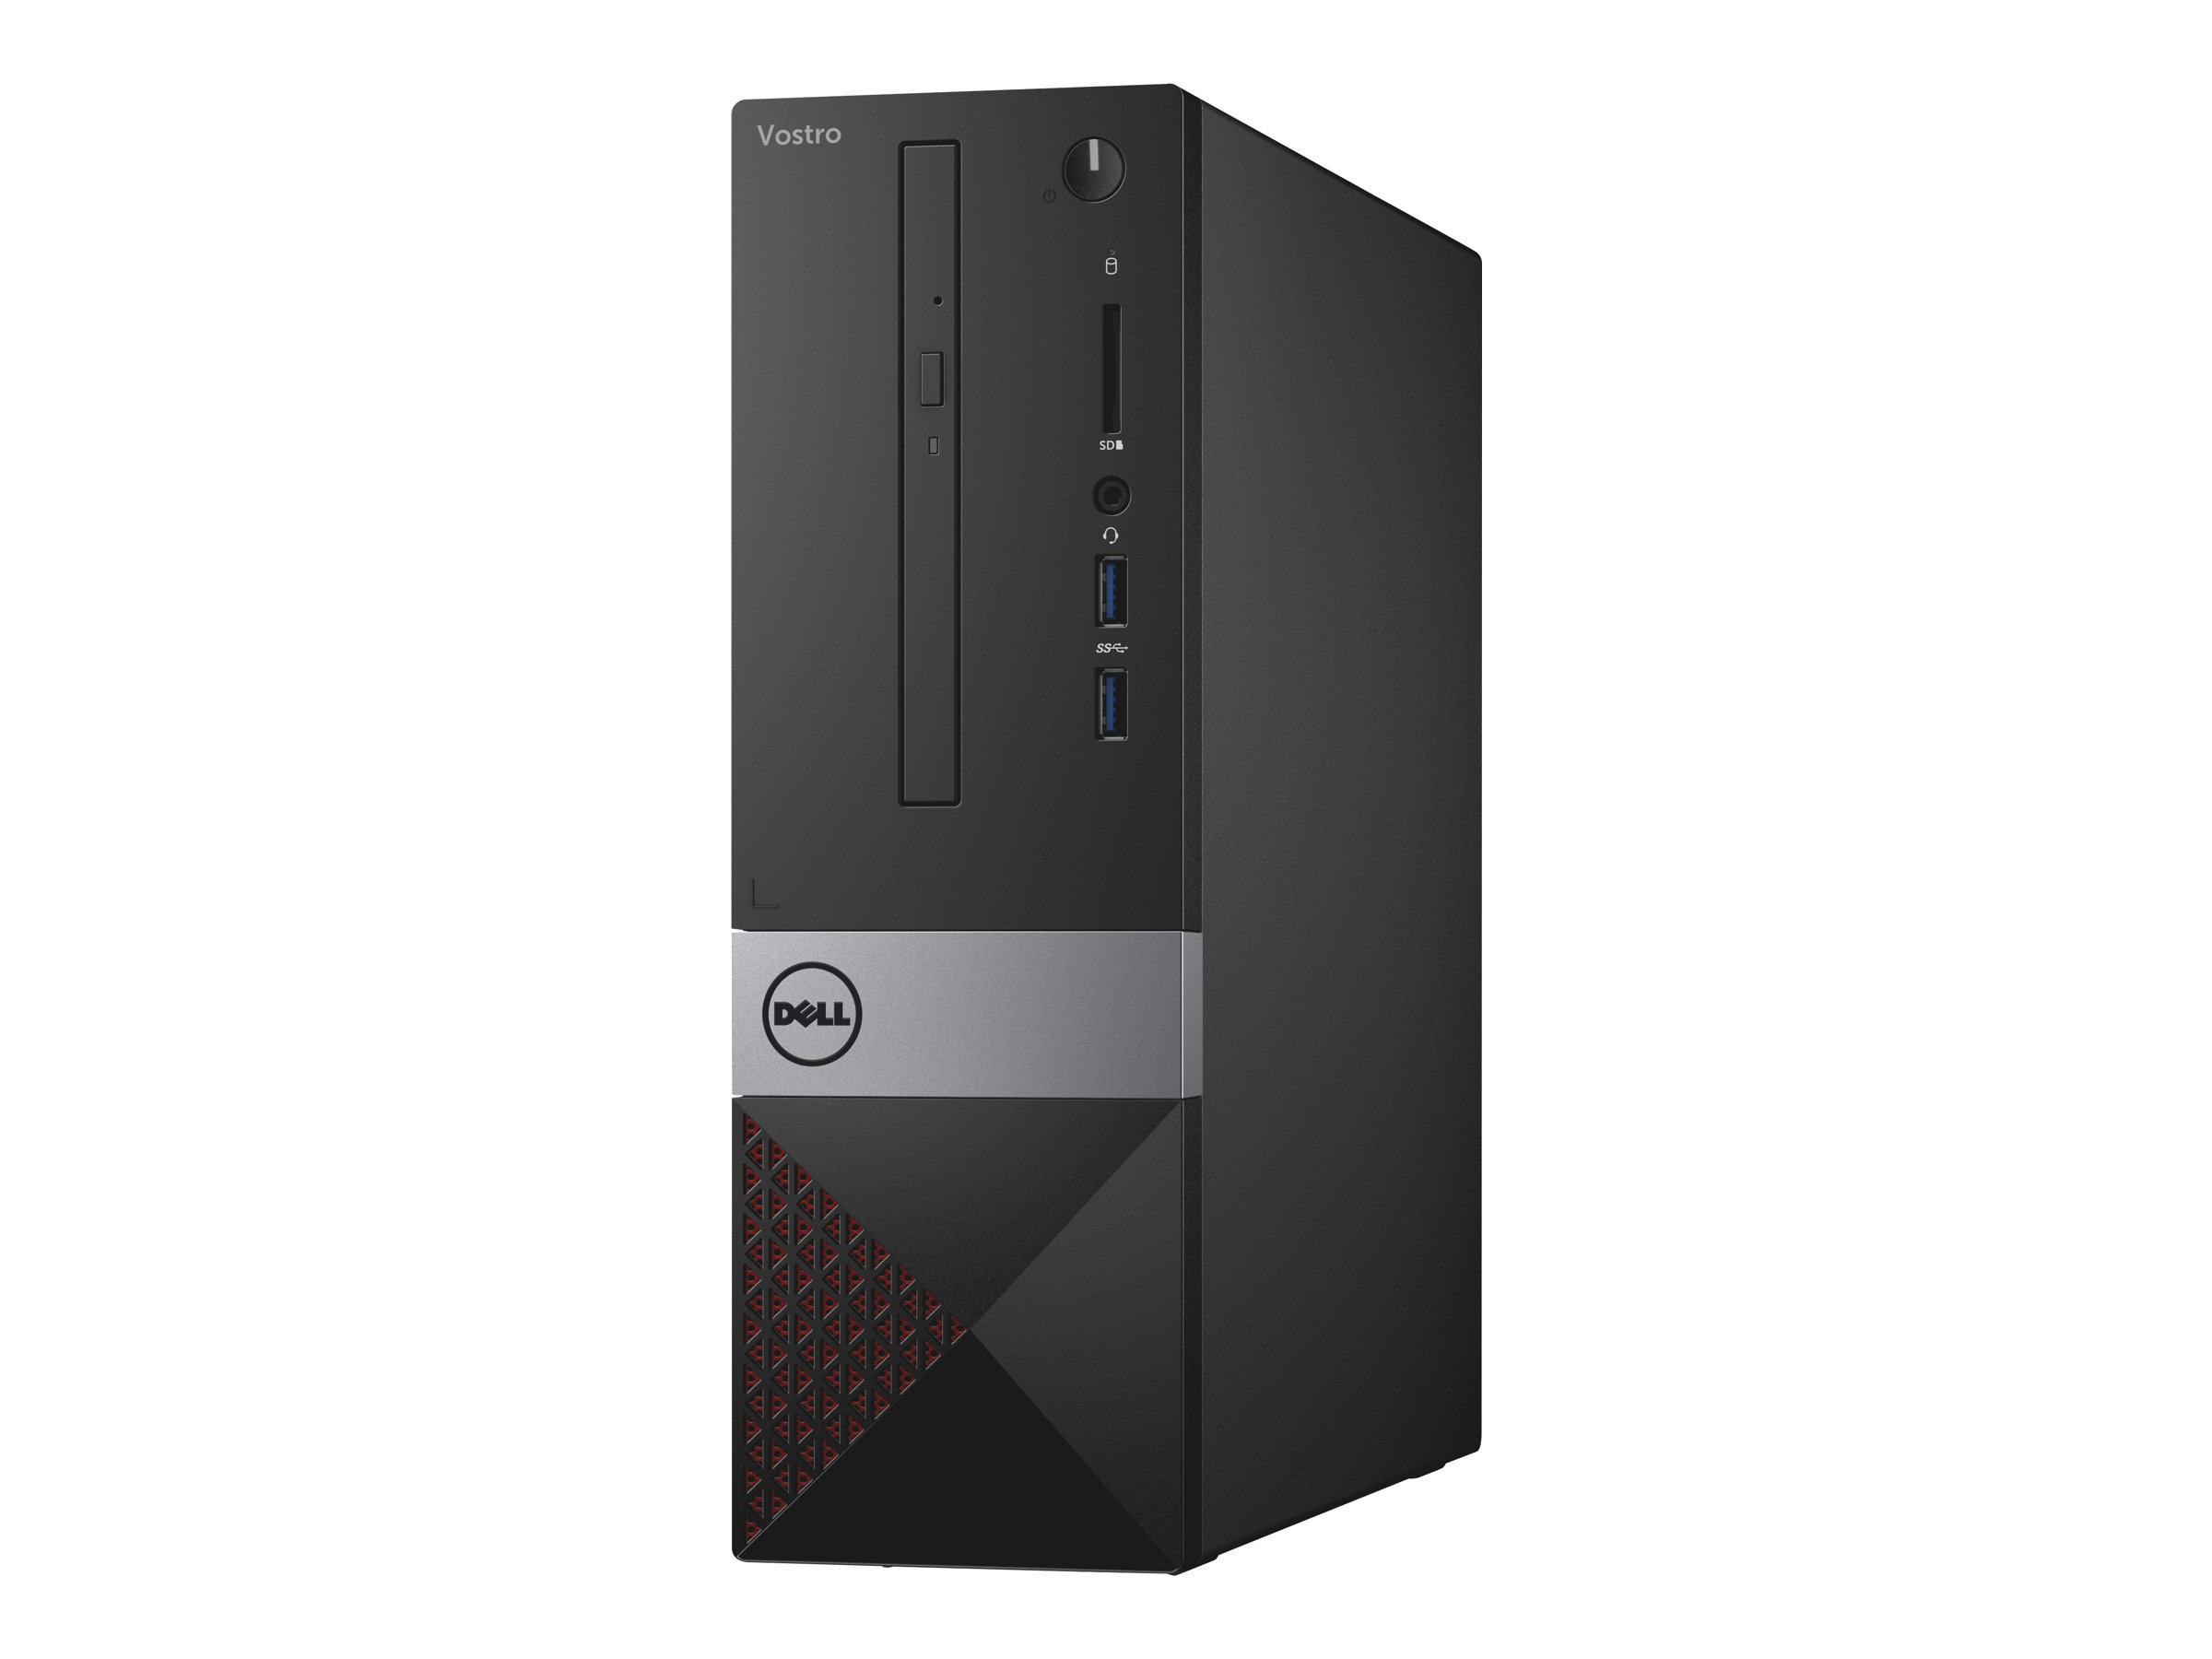 Dell Optiplex 380 Sff 32ghz Pentium Dual Core 4gb Dvd Rom No Hard Drive moreover A120207791044504a33a92de706ab109 furthermore Dell Poweredge T630 Review besides ZGVsbCBvcHRpcGxleCAzOTAgc2Zm besides Hp  paq Workstation Z210 Sff Core I3 3 1ghz 4gb Ram 250gb Hdd Dvd Rw Windows 10 Pro 64 Desktop  puter. on dell sff